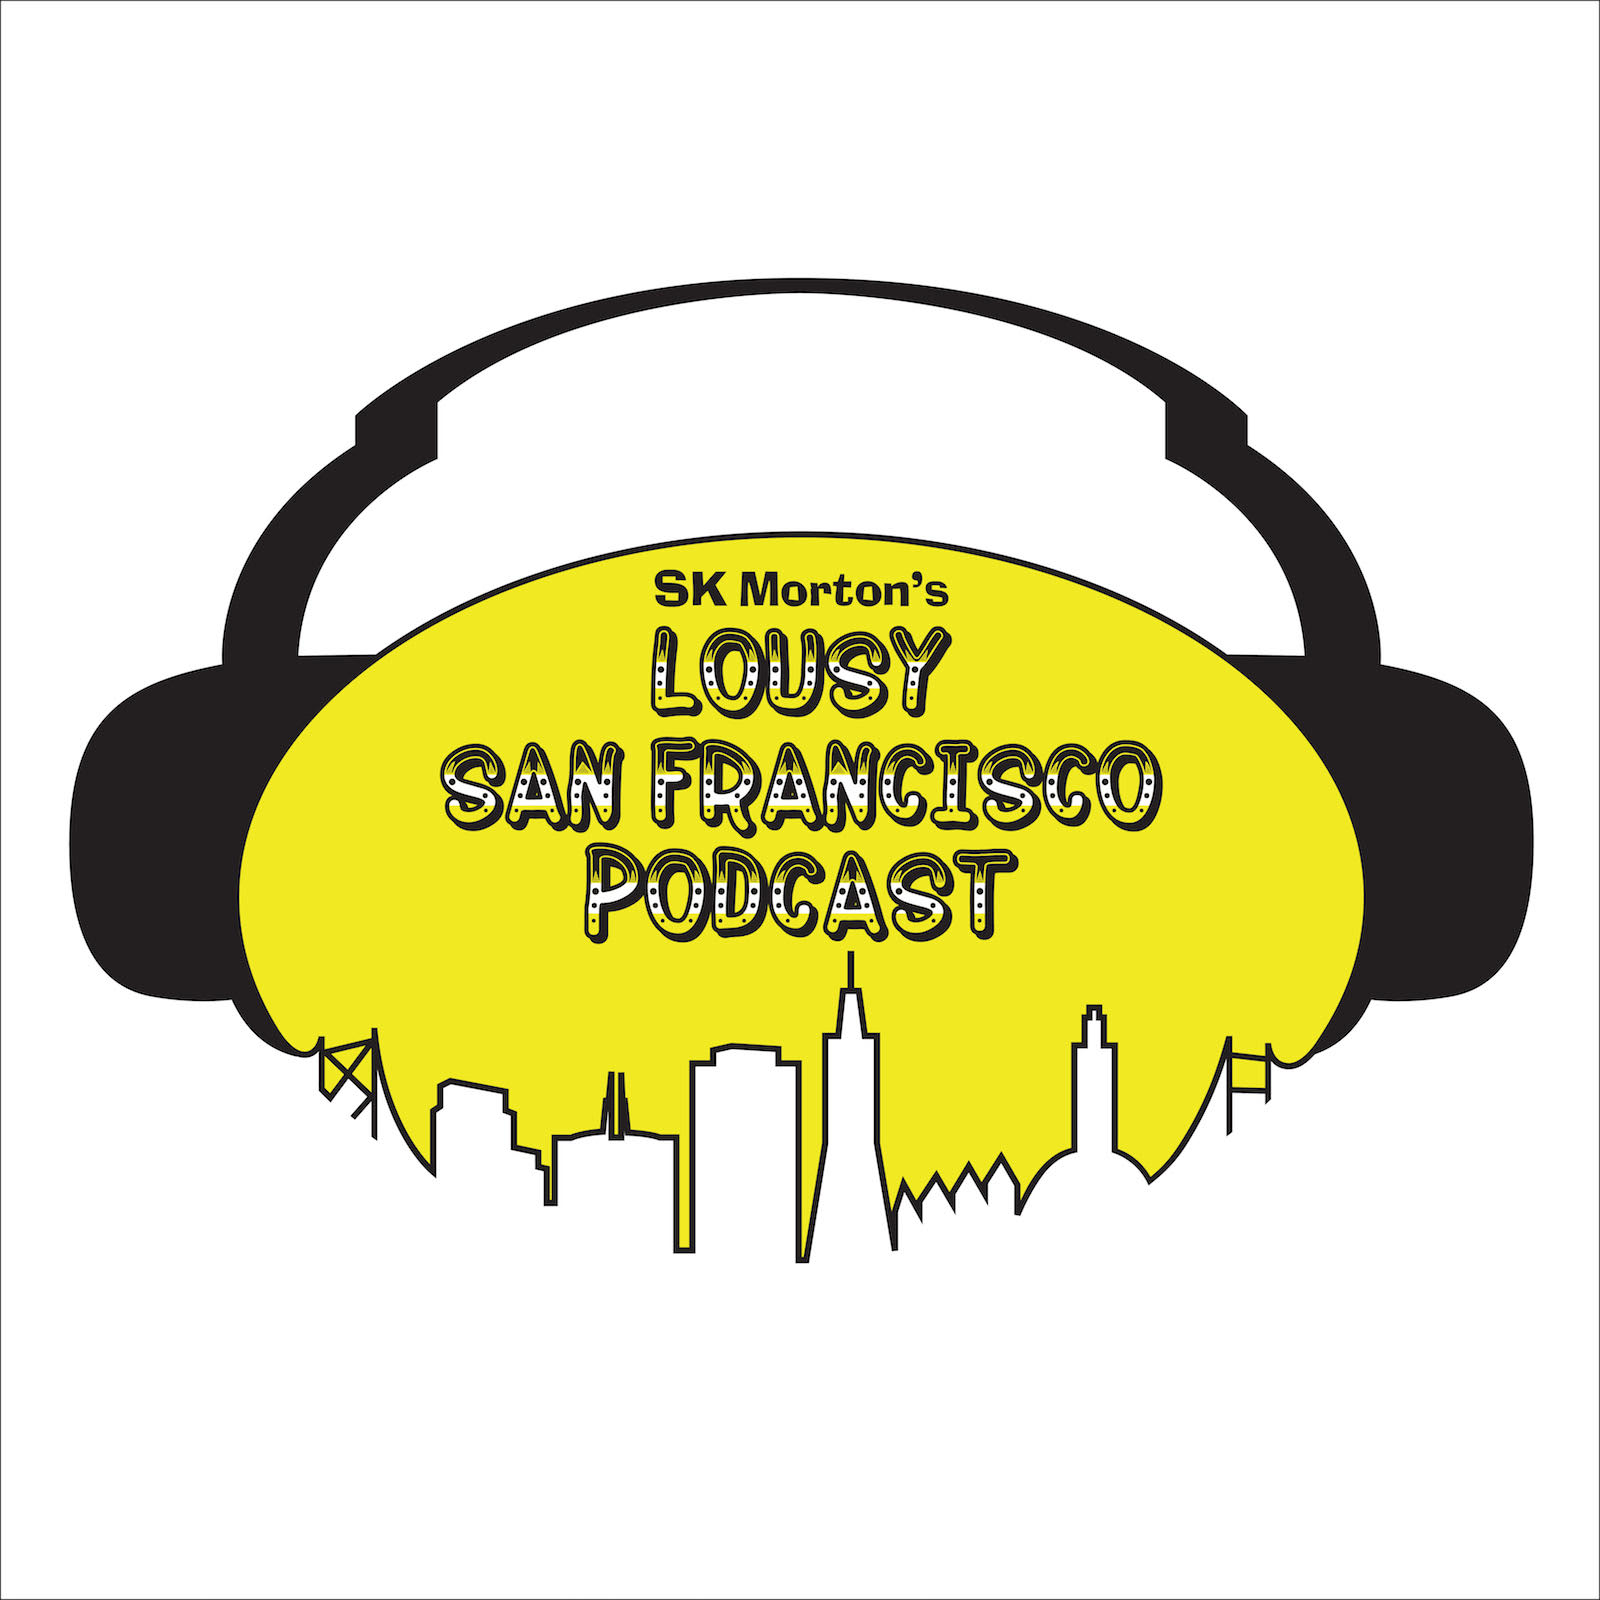 Logo-Podcast-1600x1600-vector.jpg